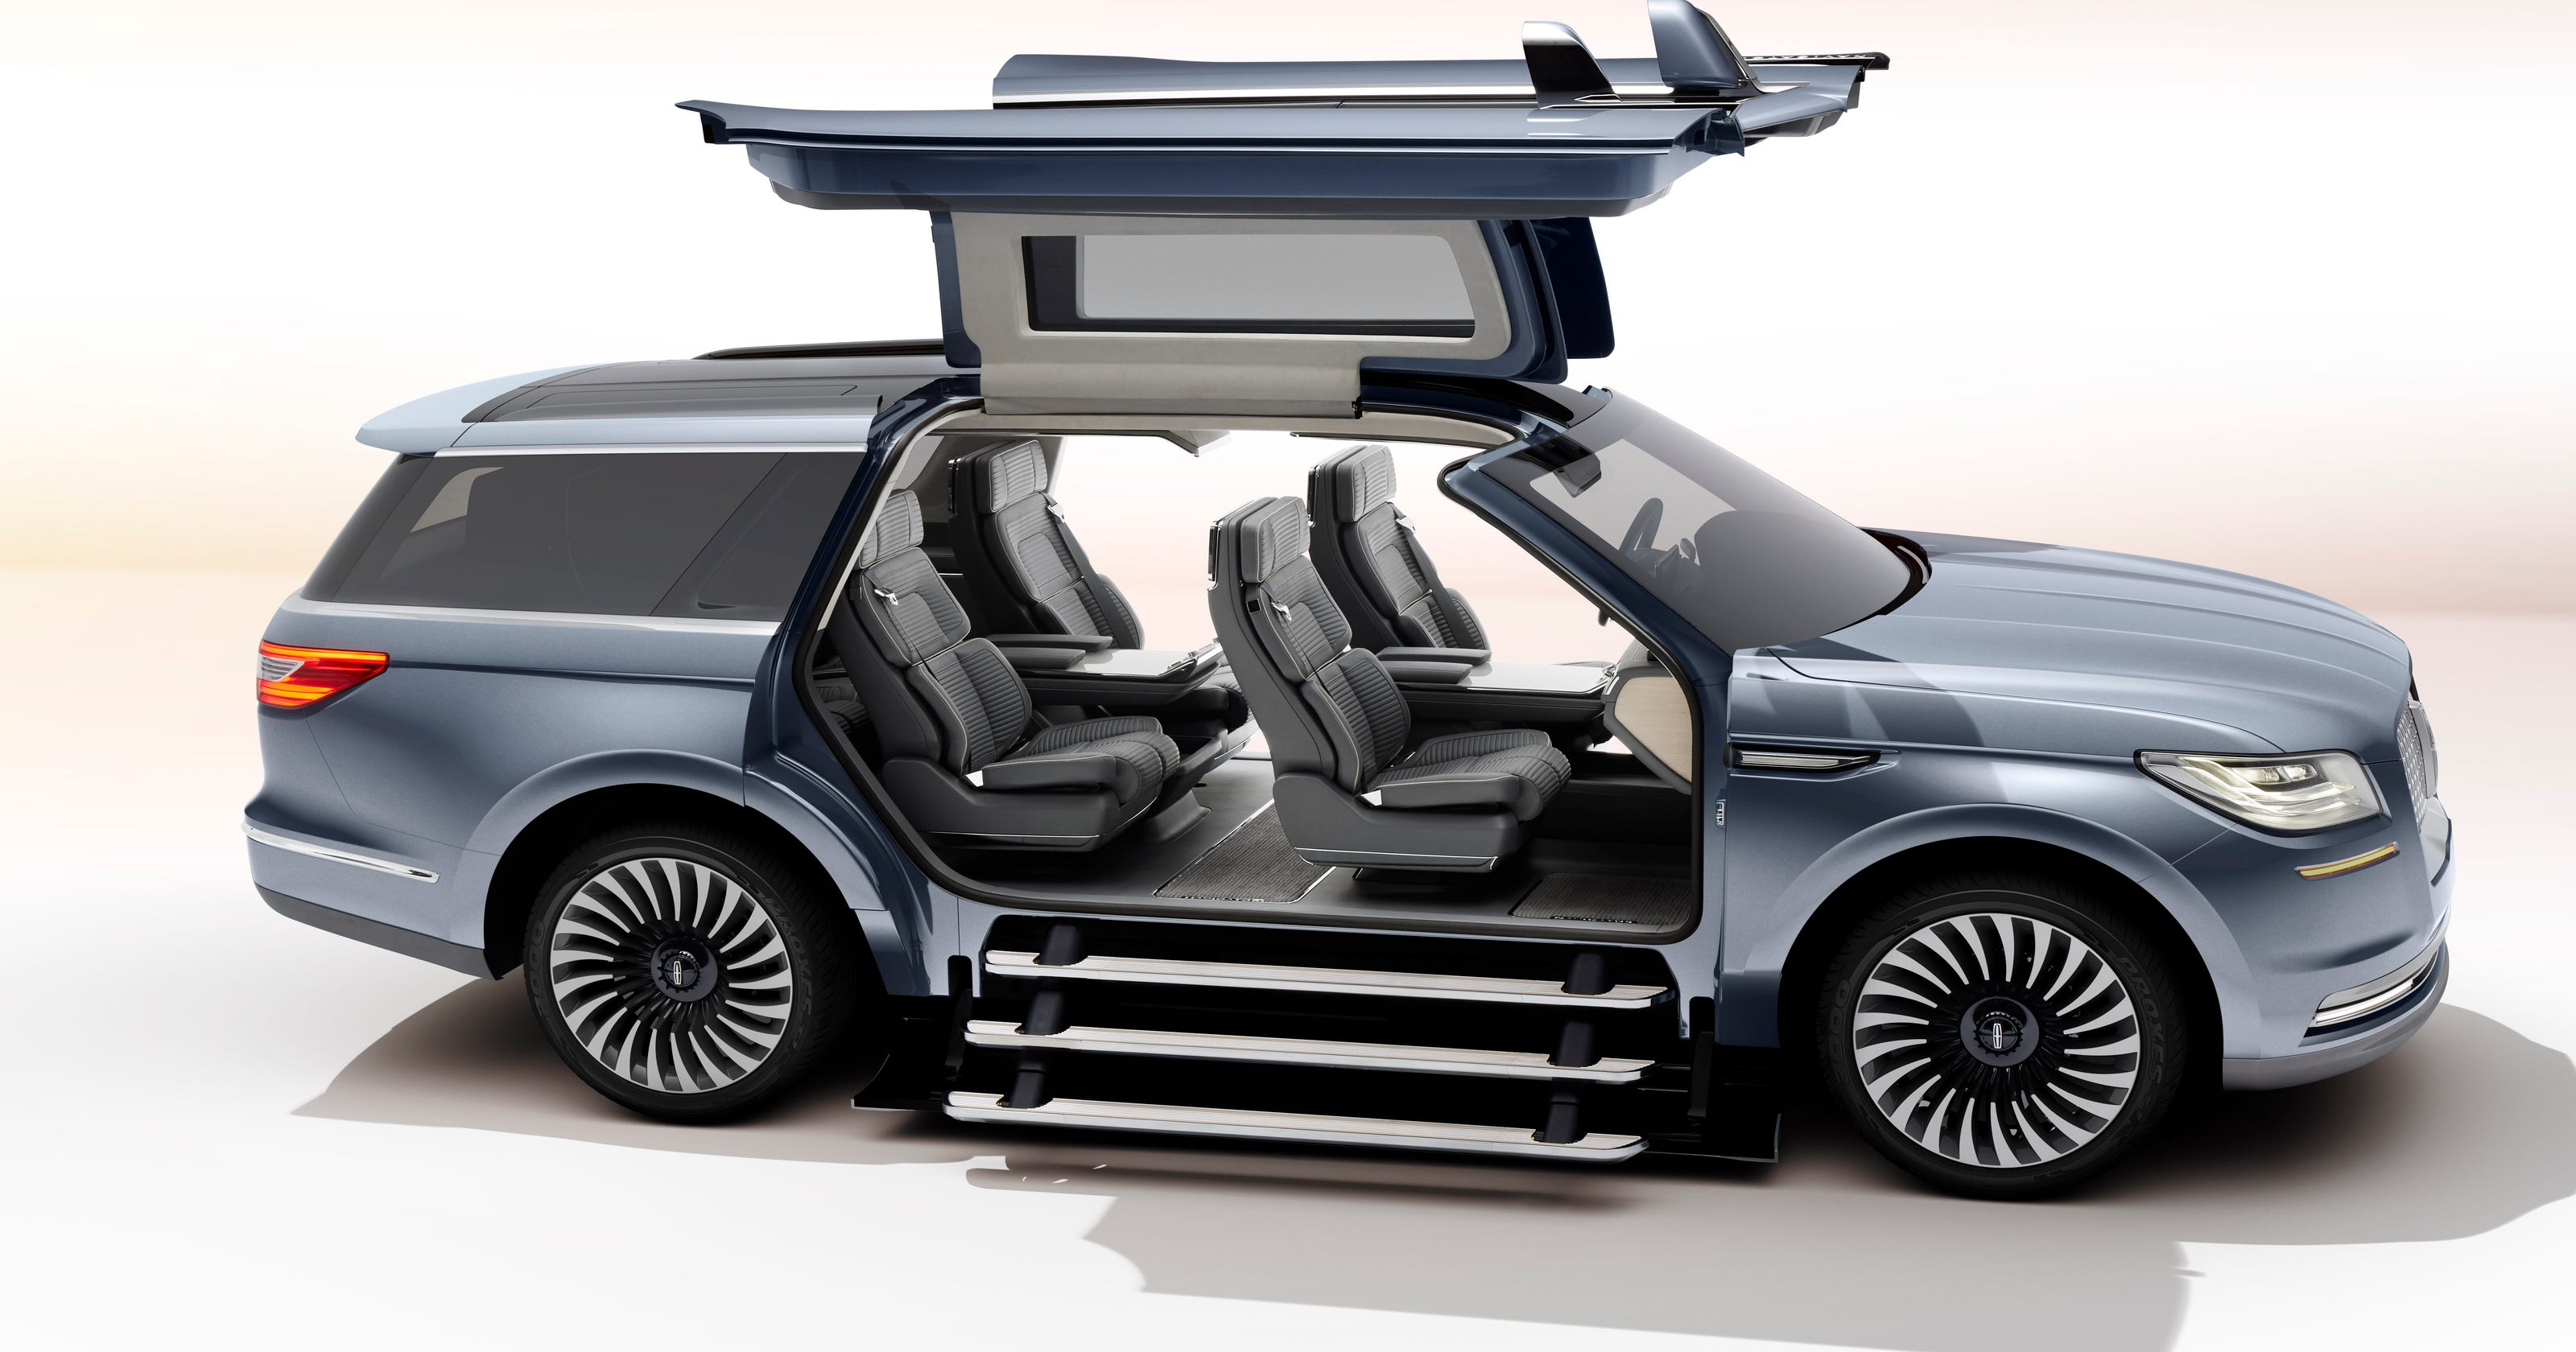 Gullwing Doors Wow Ny Auto Show Crowd In New Lincoln Navigator Concept Jeep That Looks Like Rober